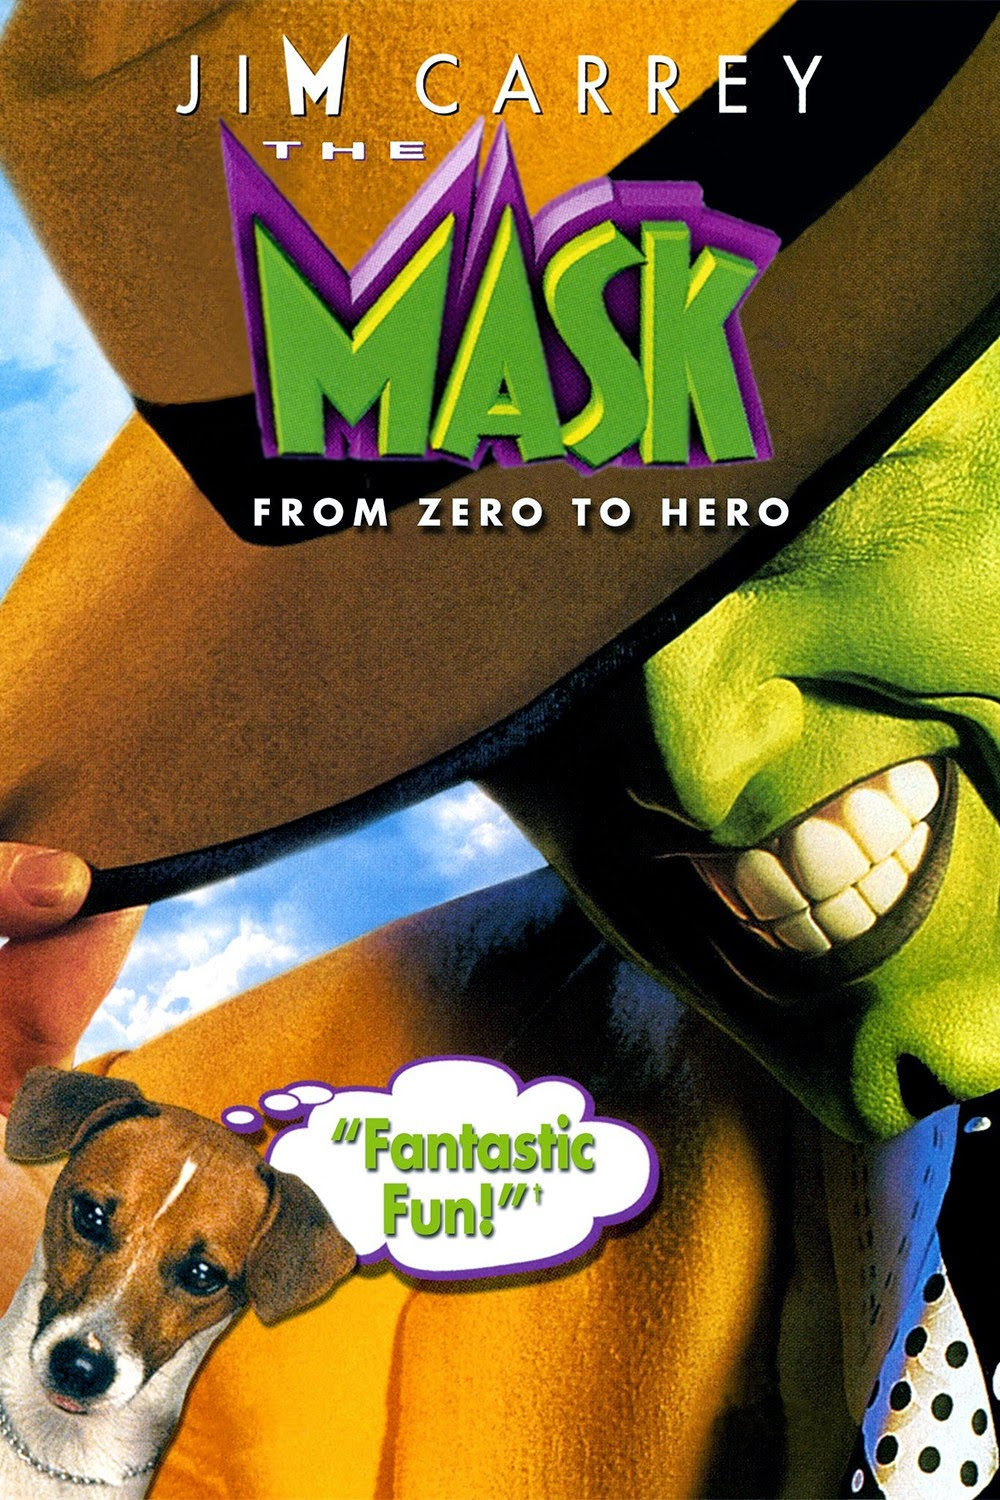 The Mask (kashi chu Mantar) in Punjabi free full donwload